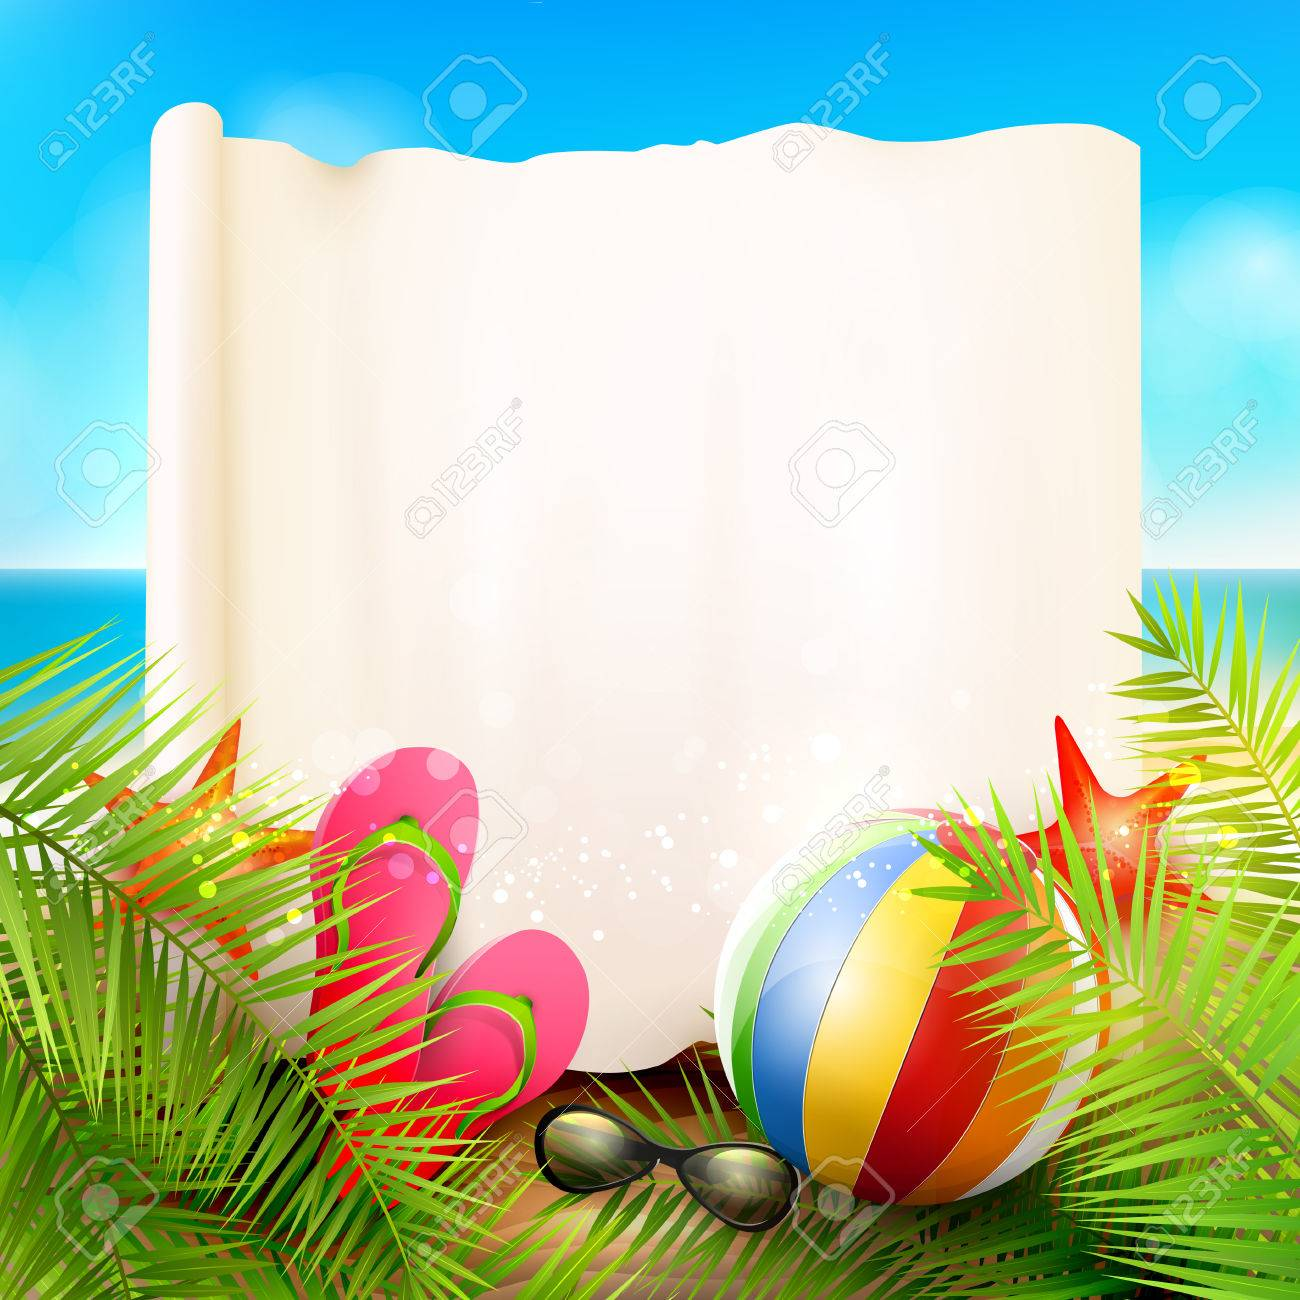 Seaside view on beautiful sunny beach with palm leaves, beach ball, sunglasses and flip-flops - vector background with empty paper with place for your message - 59004909